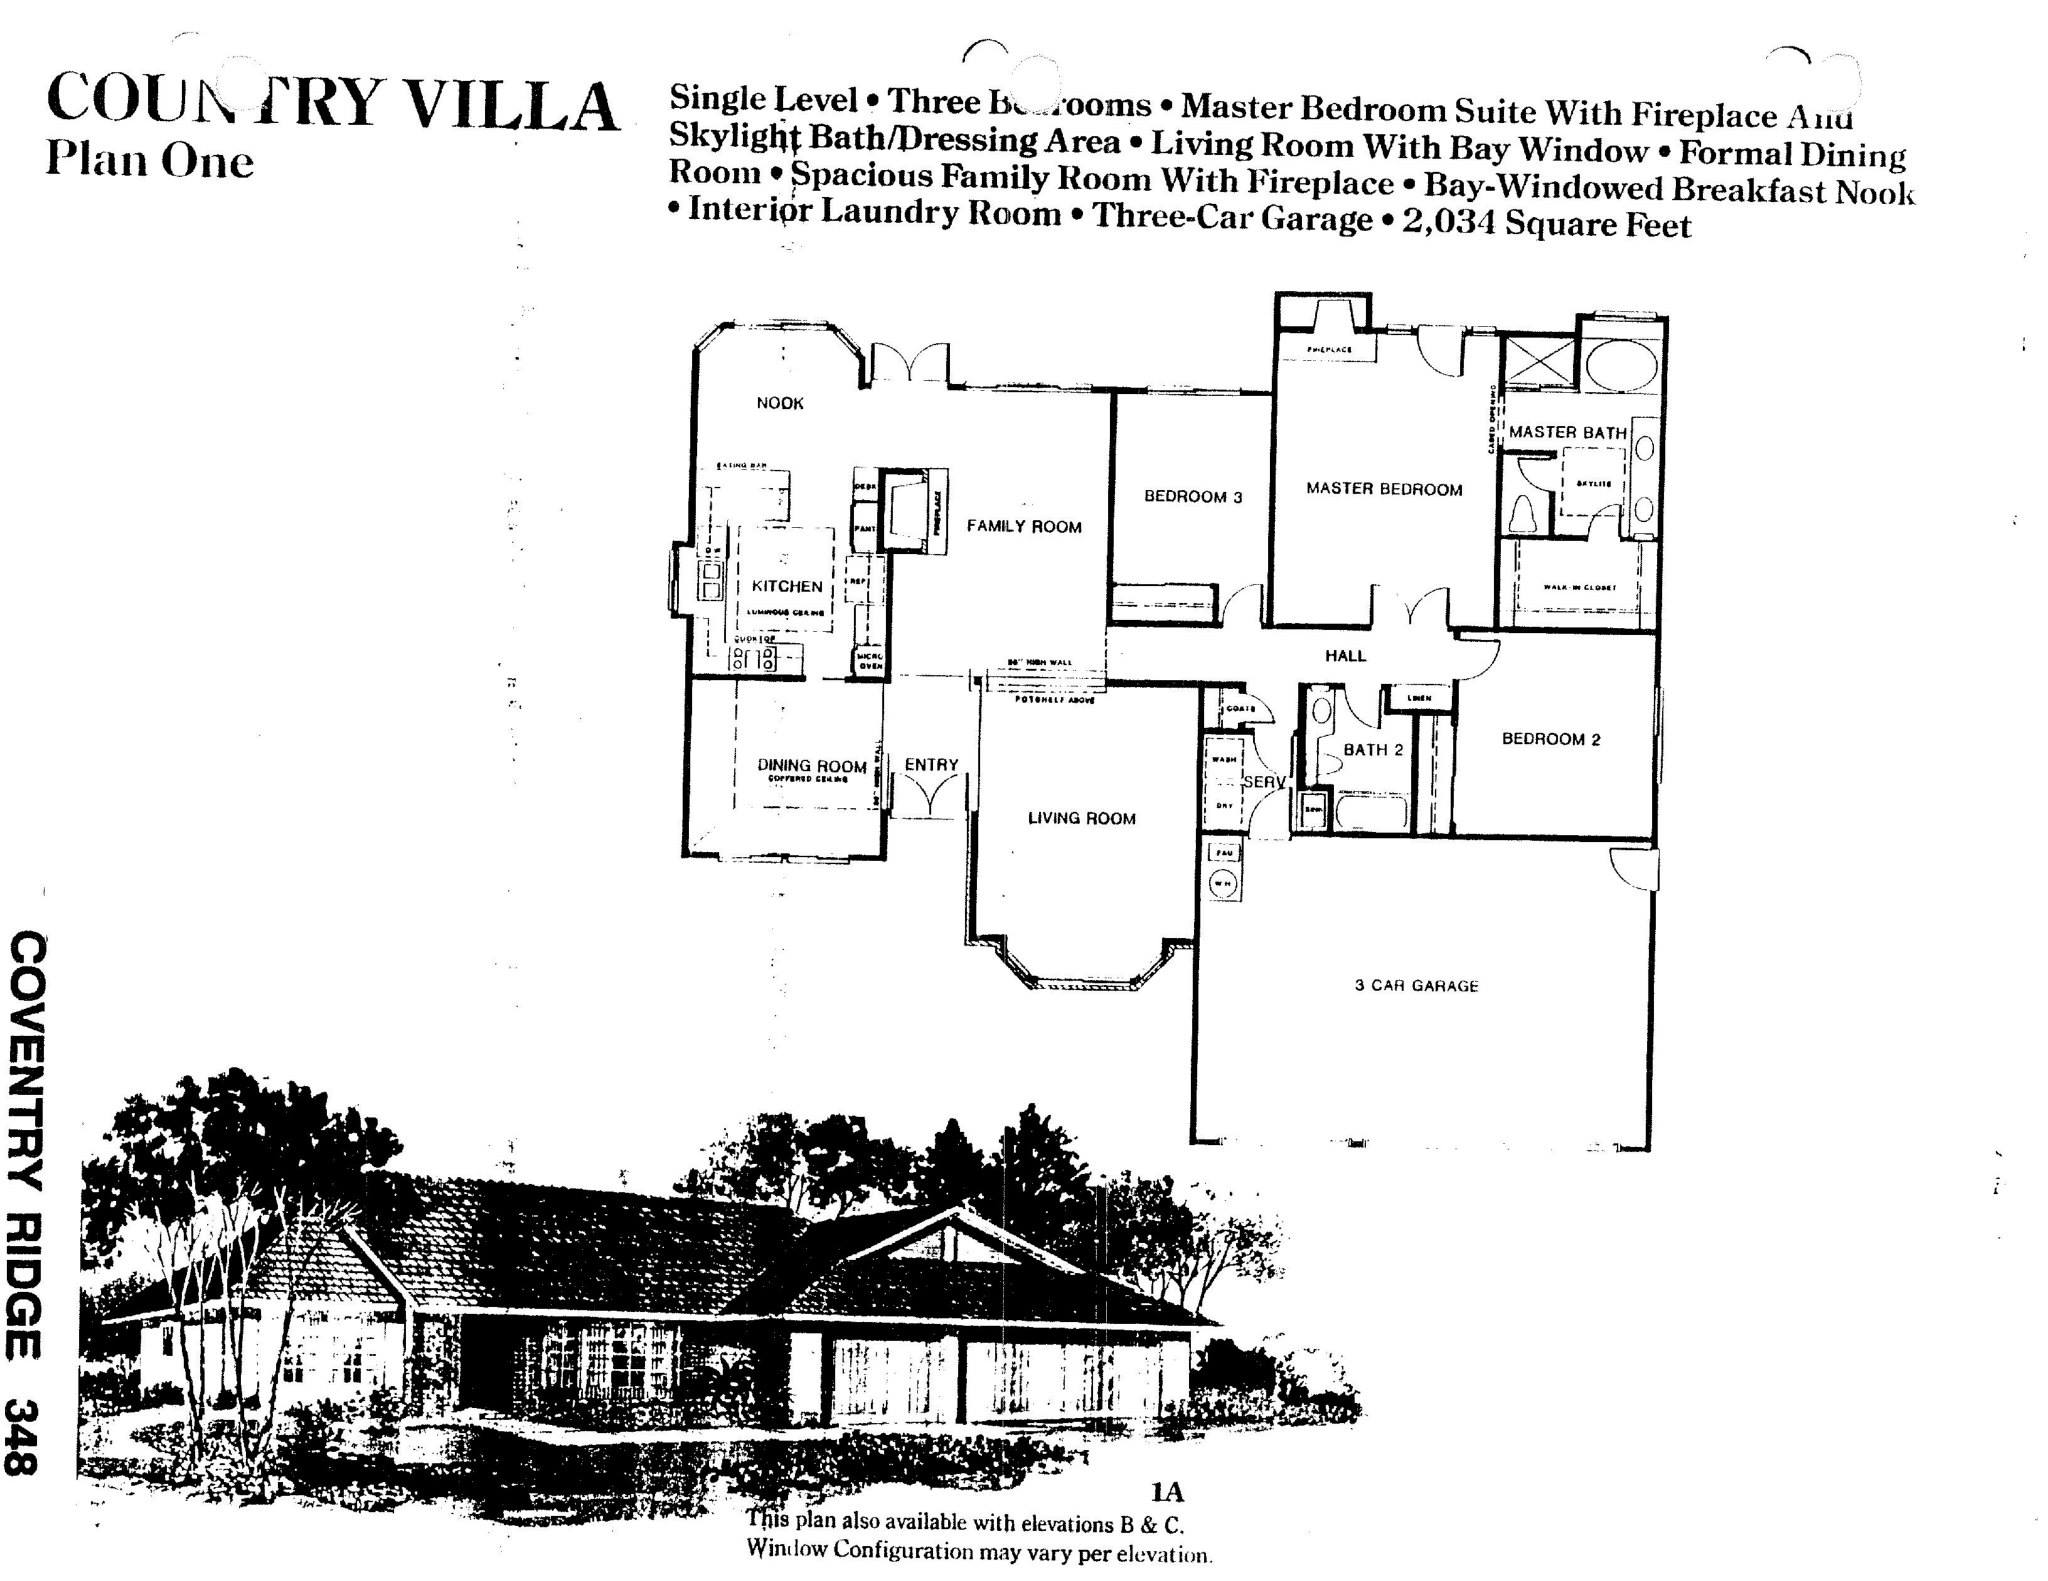 Coventry Ridge - Country Villa - Plan One